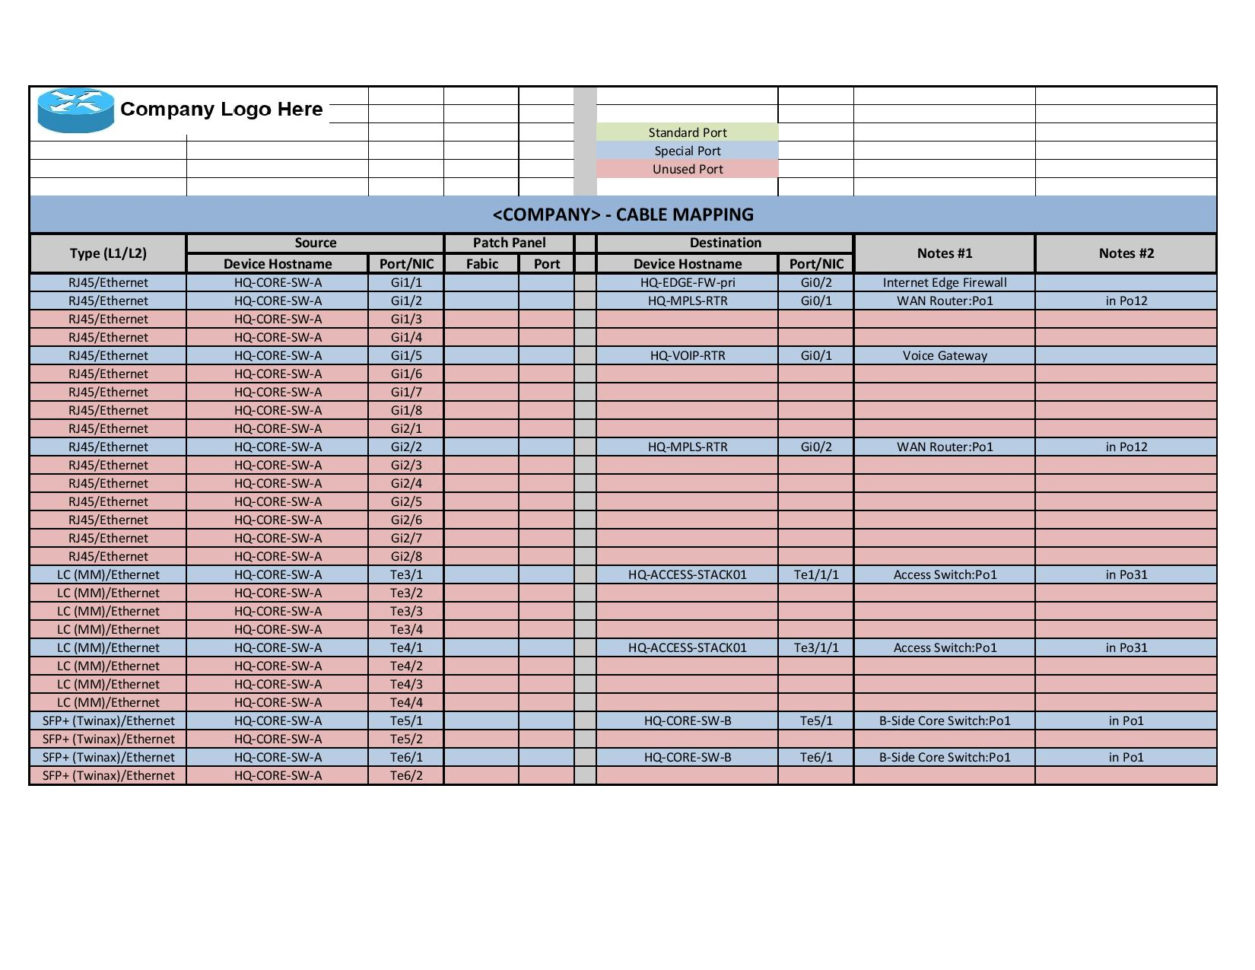 Patch Panel Spreadsheet Template Regarding Network Documentation Series: Port Mapping